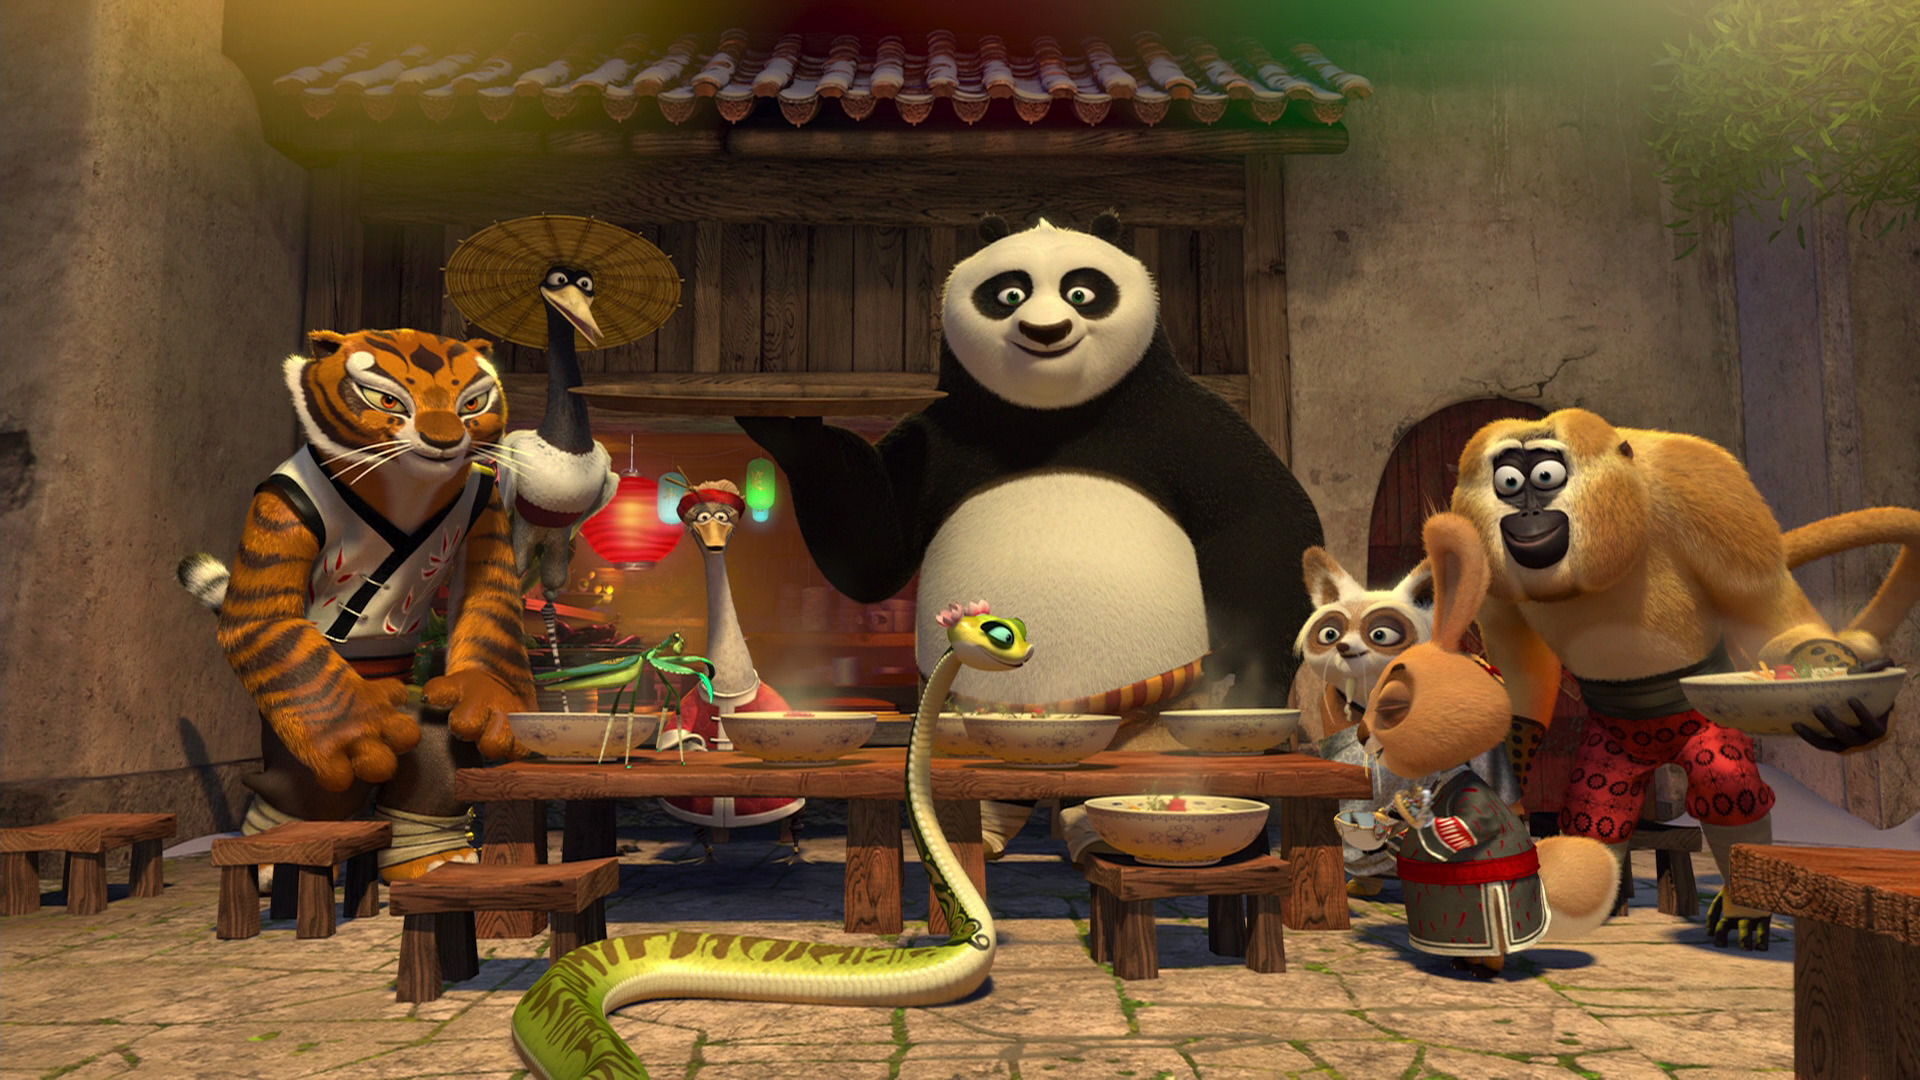 Review Kung Fu Panda S Fun Fights Deserve Better Story Sense-2926